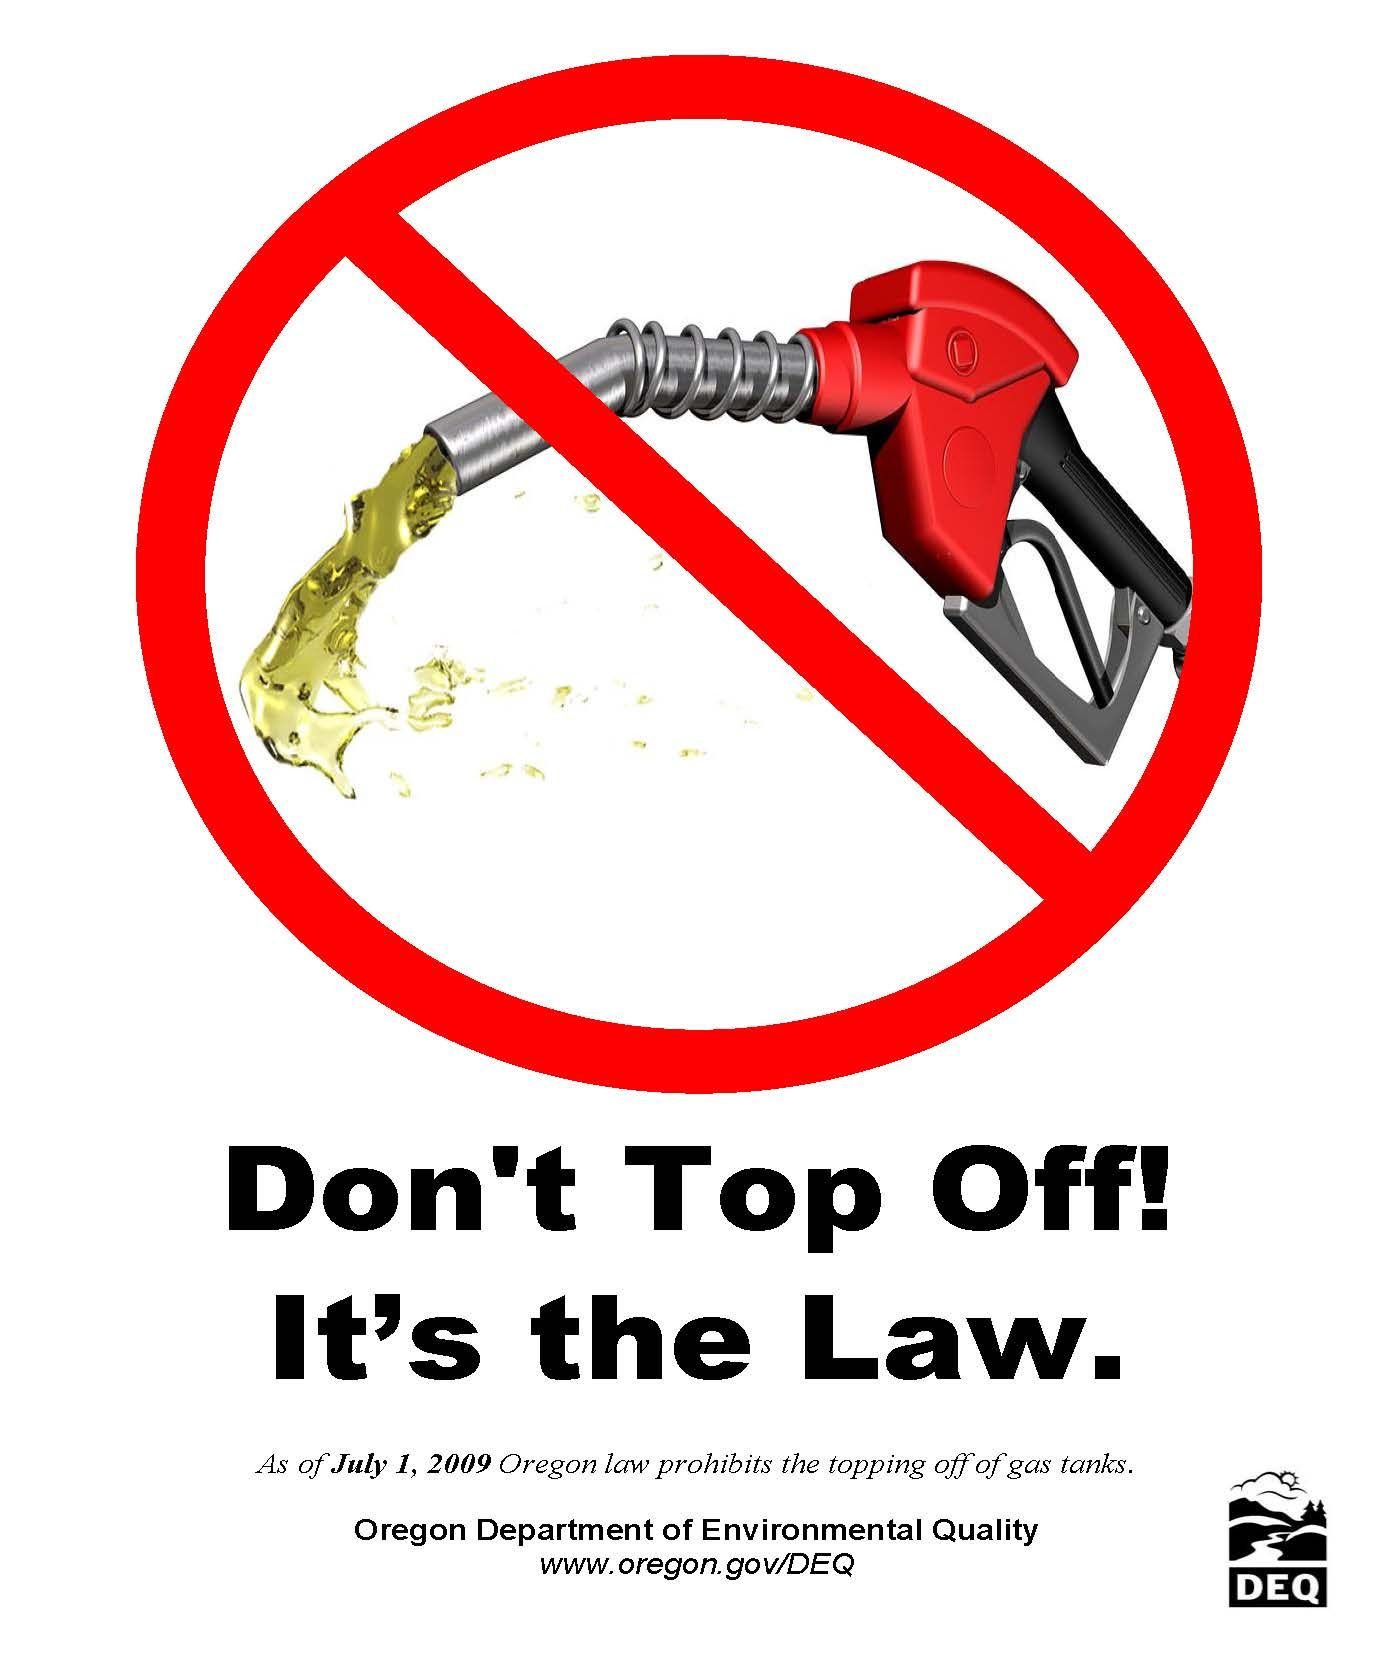 Don't top off! It's the law, by the Oregon Department of